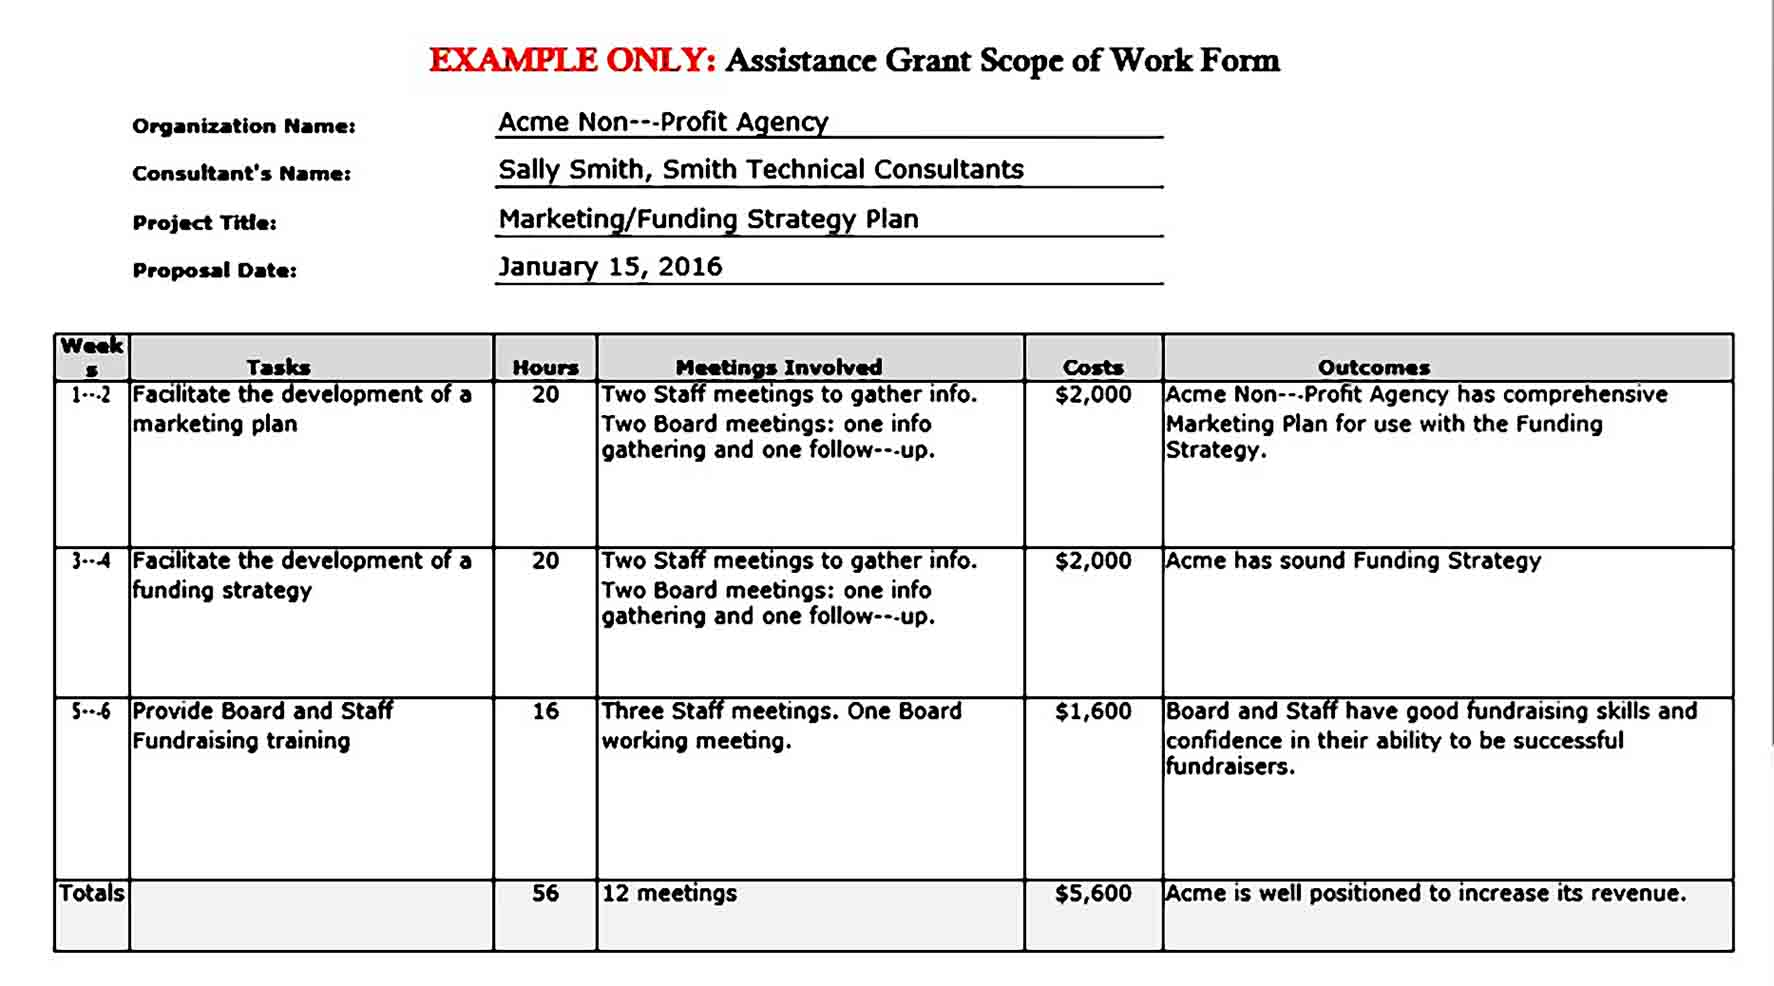 Assistance Grant Example Project Scope of Work Form